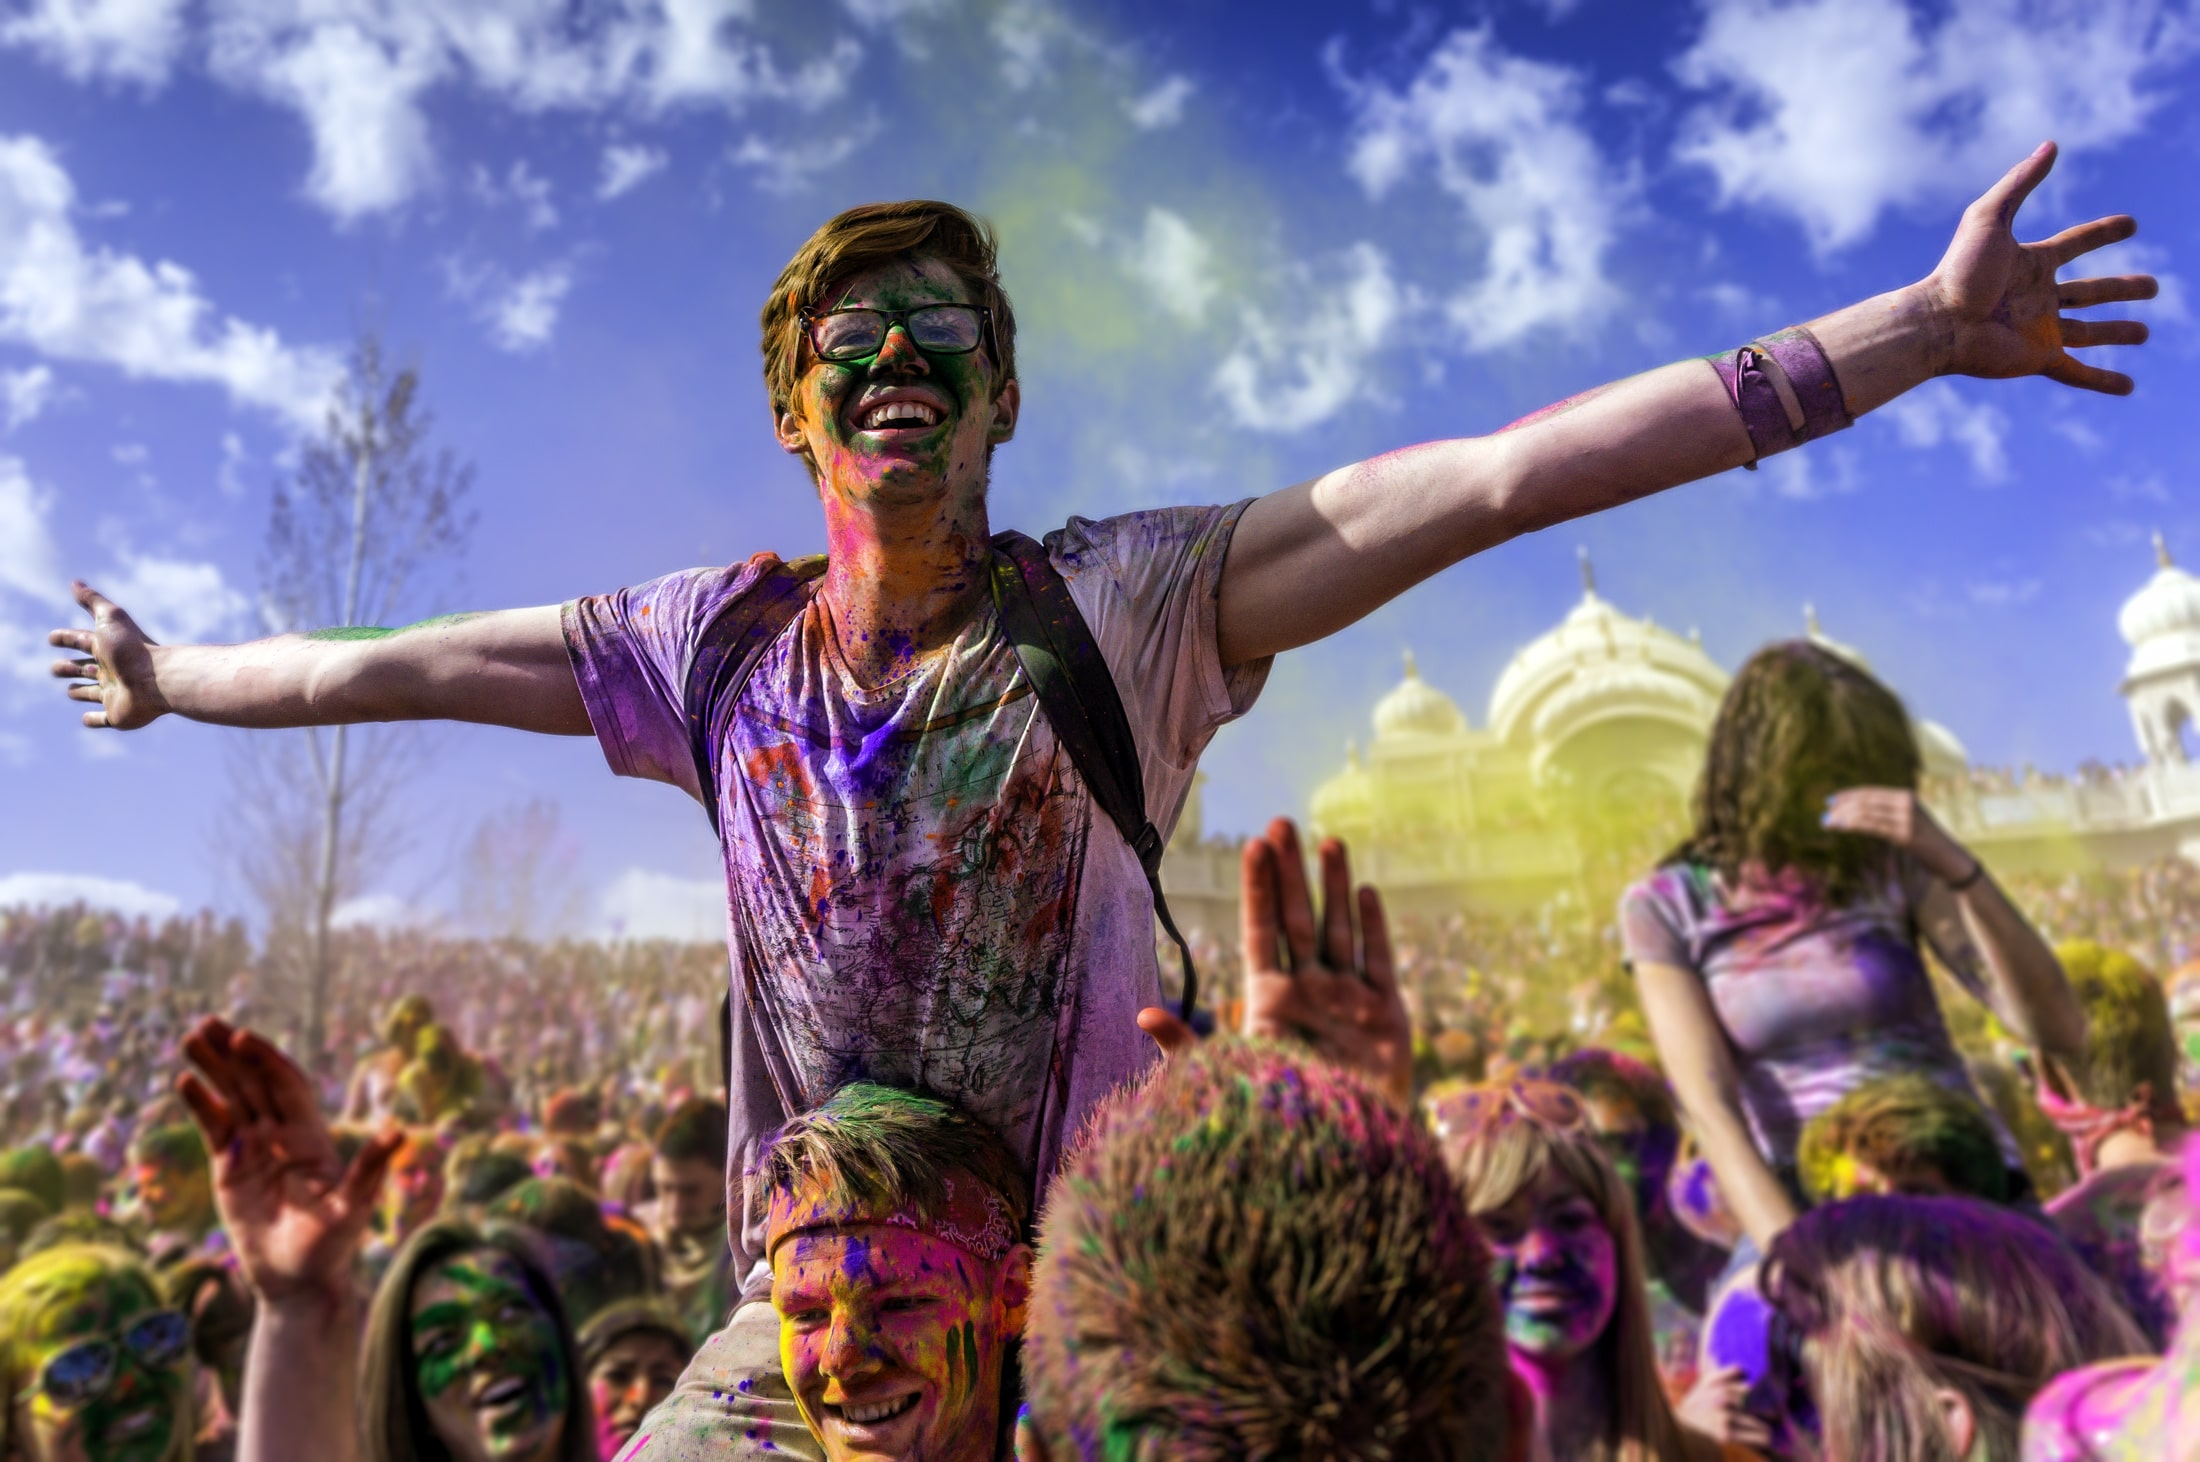 Holi Festival - 8 Festivals From Around The World To Add To Your Bucket List